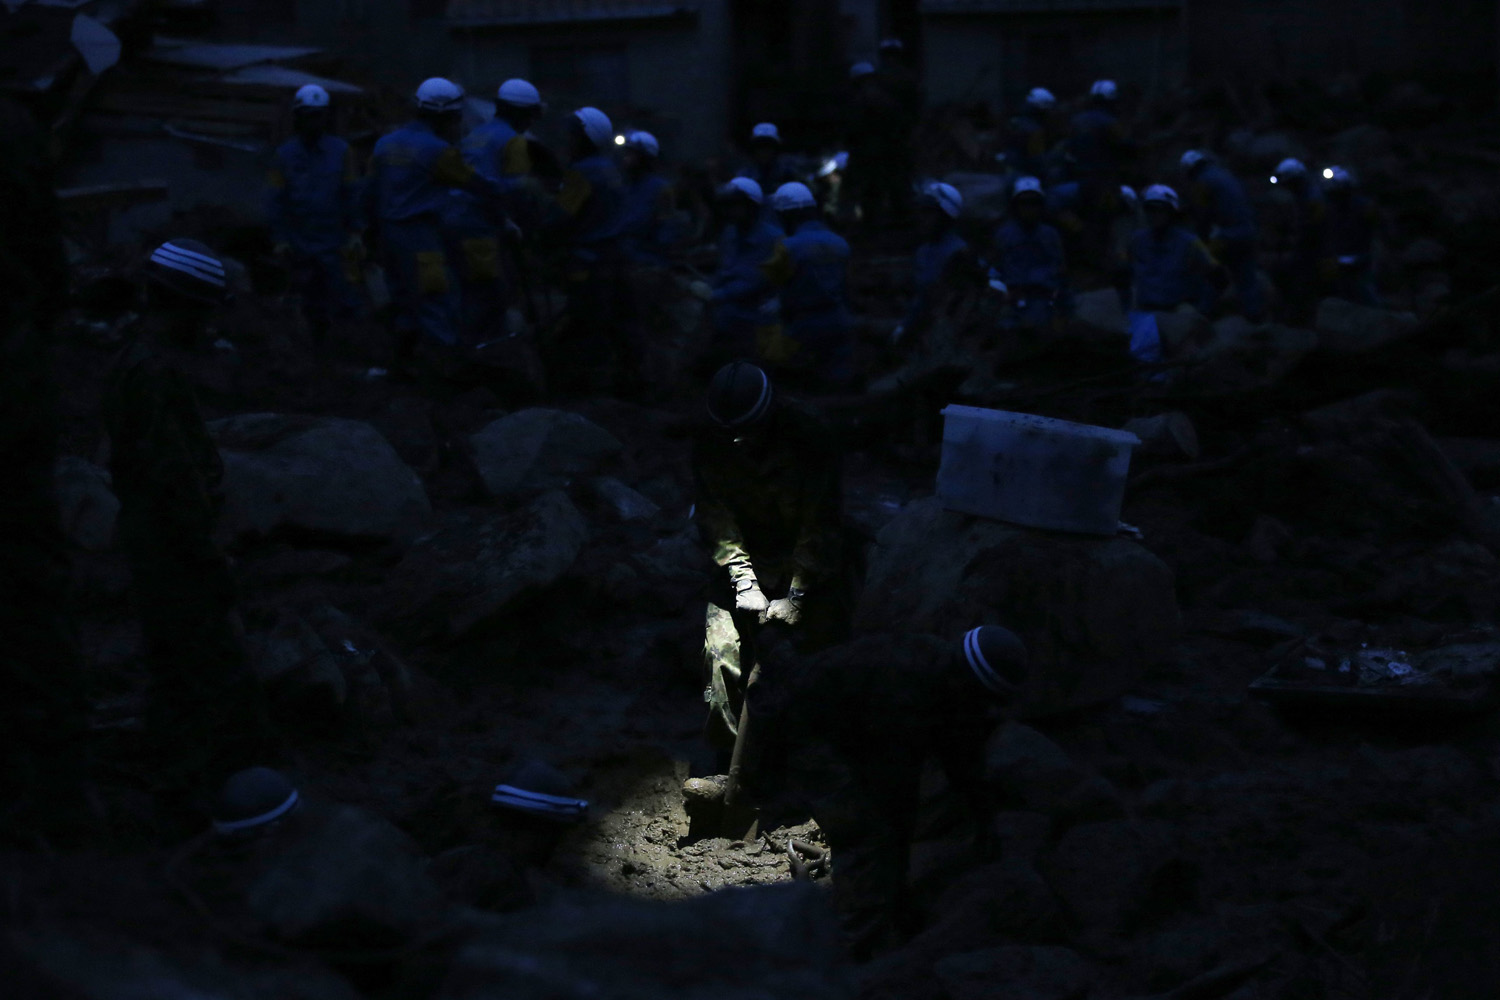 Aug. 21, 2014. A Japan Self-Defense Force (JSDF) soldier searches for survivors at dusk at a site where a landslide swept through a residential area at Asaminami ward in Hiroshima, western Japan.